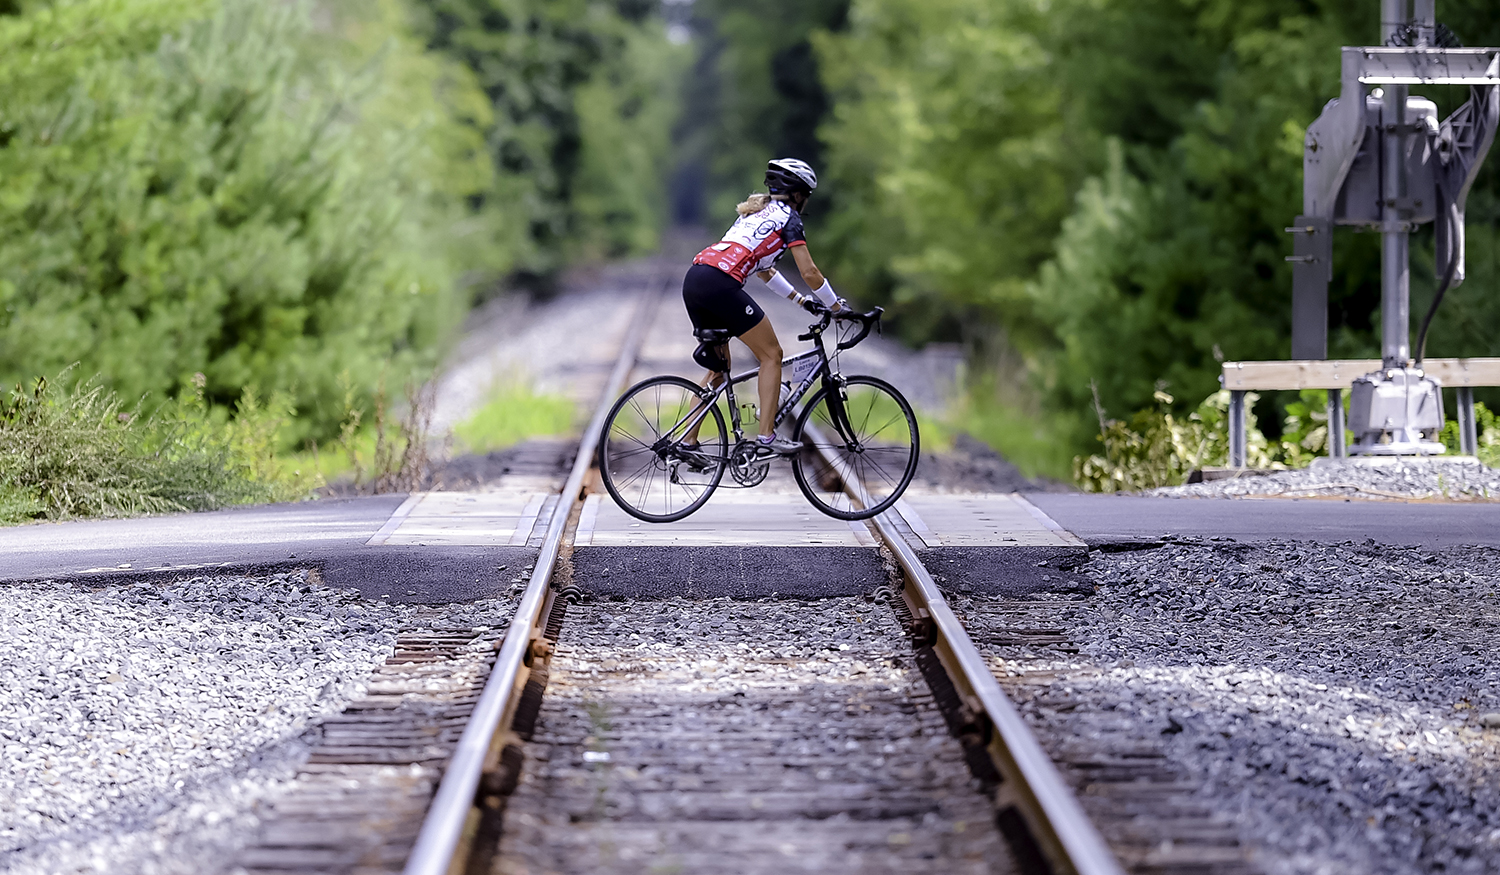 Image of a bicyclist riding over train tracks